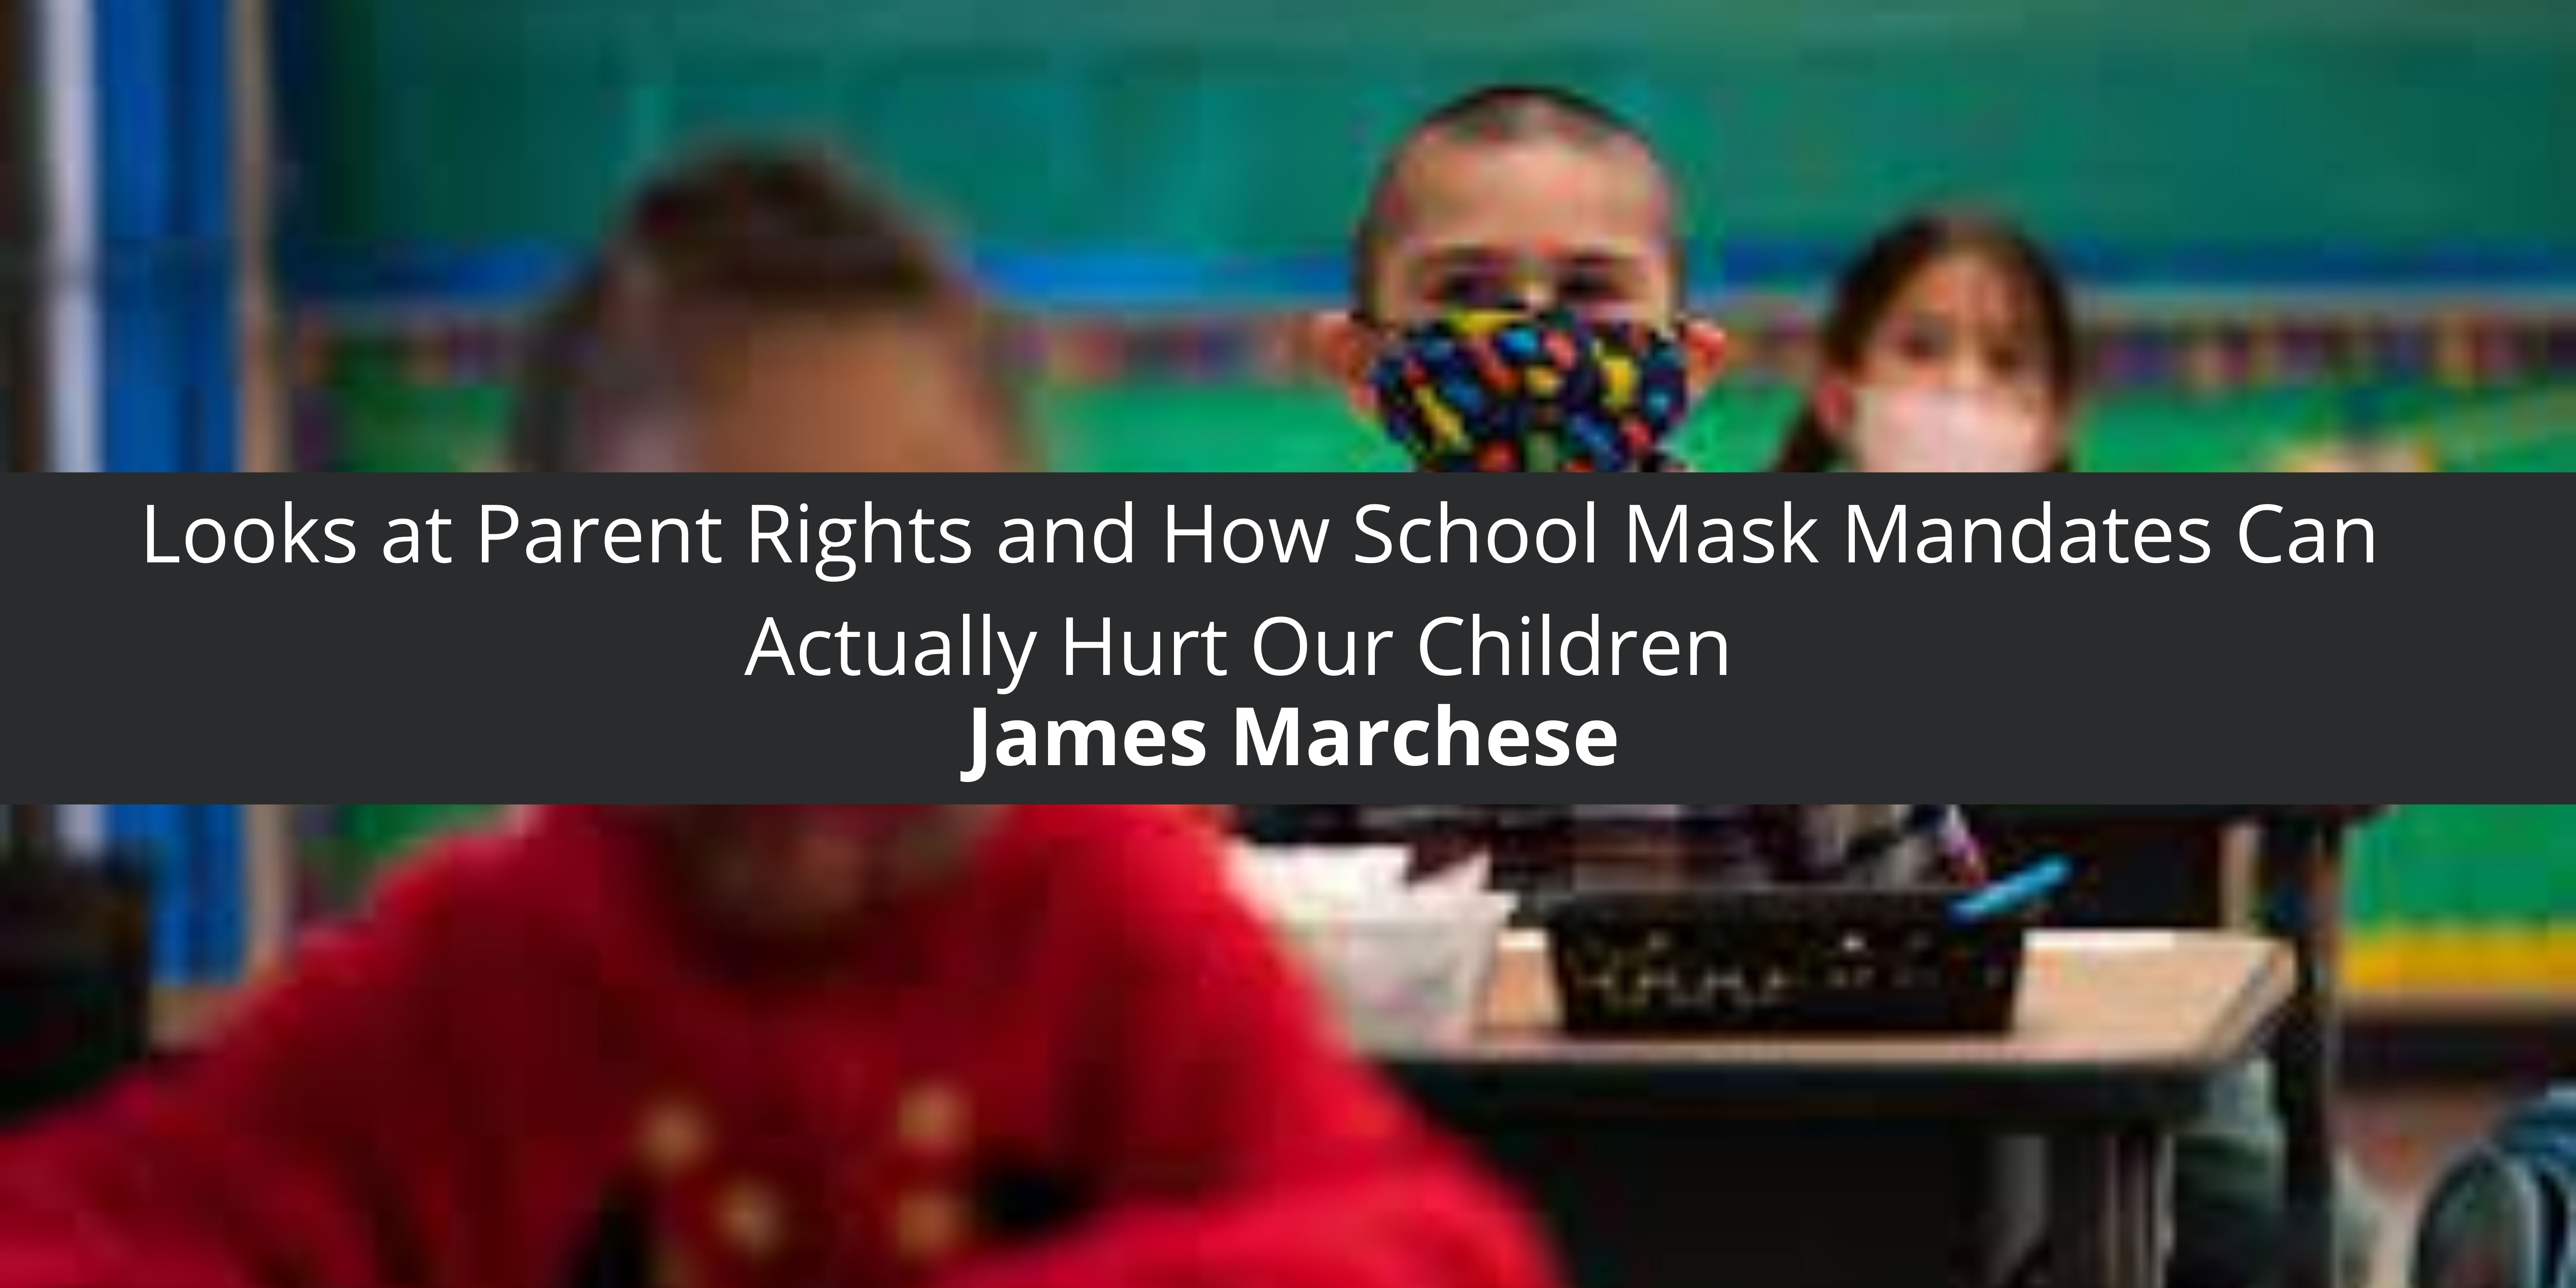 James Marchese Looks at Parent Rights and How School Mask Mandates